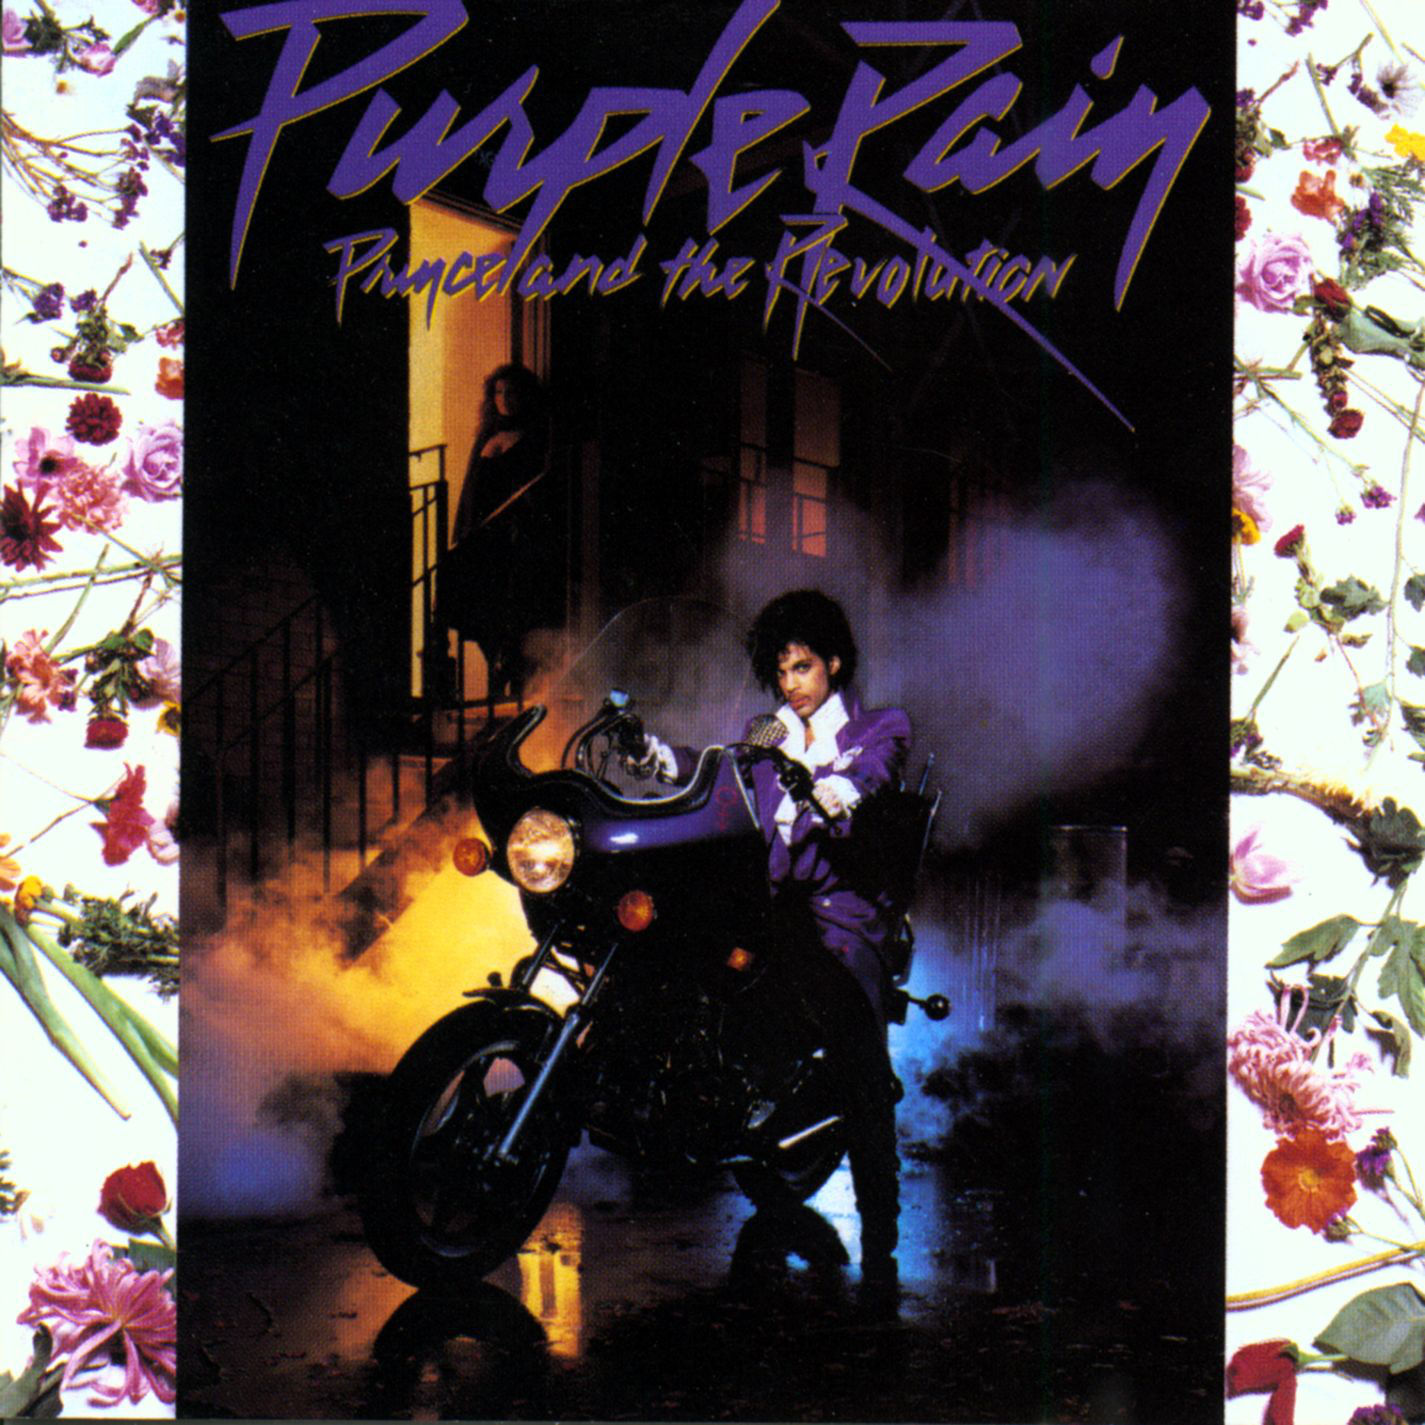 Art for Purple Rain by Prince & The Revolution